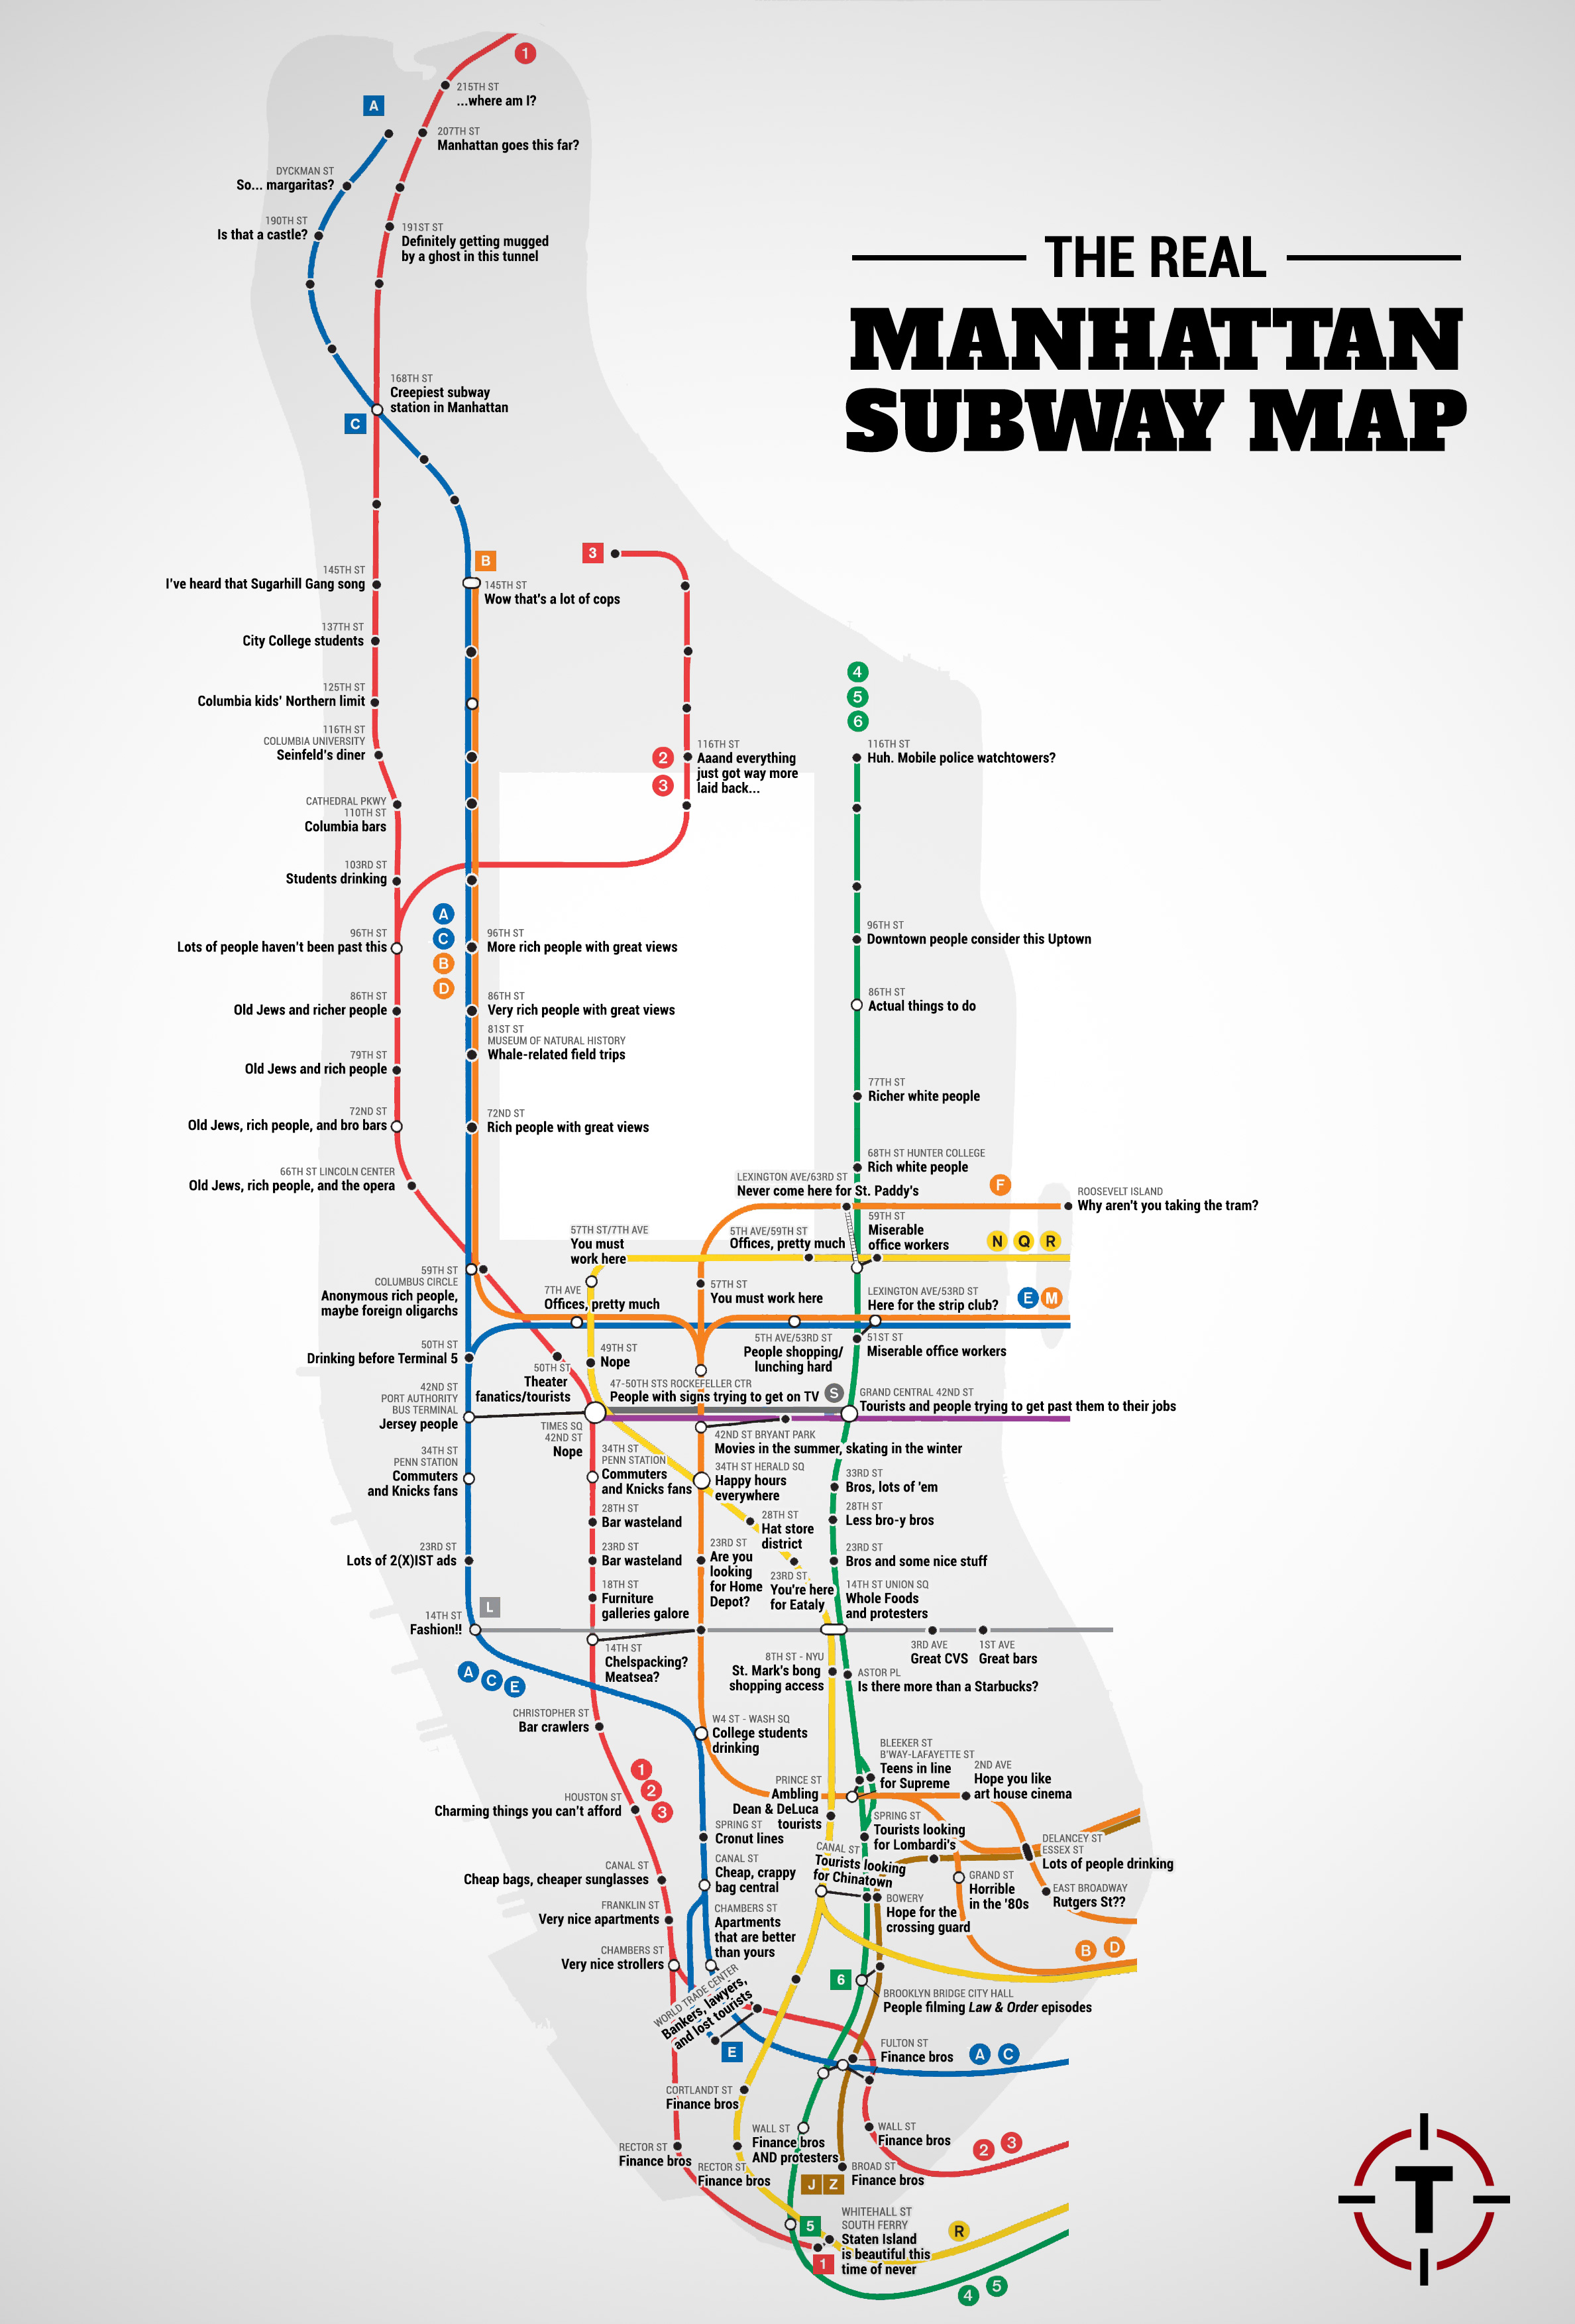 The Real Manhattan Subway Map | Viewing NYC